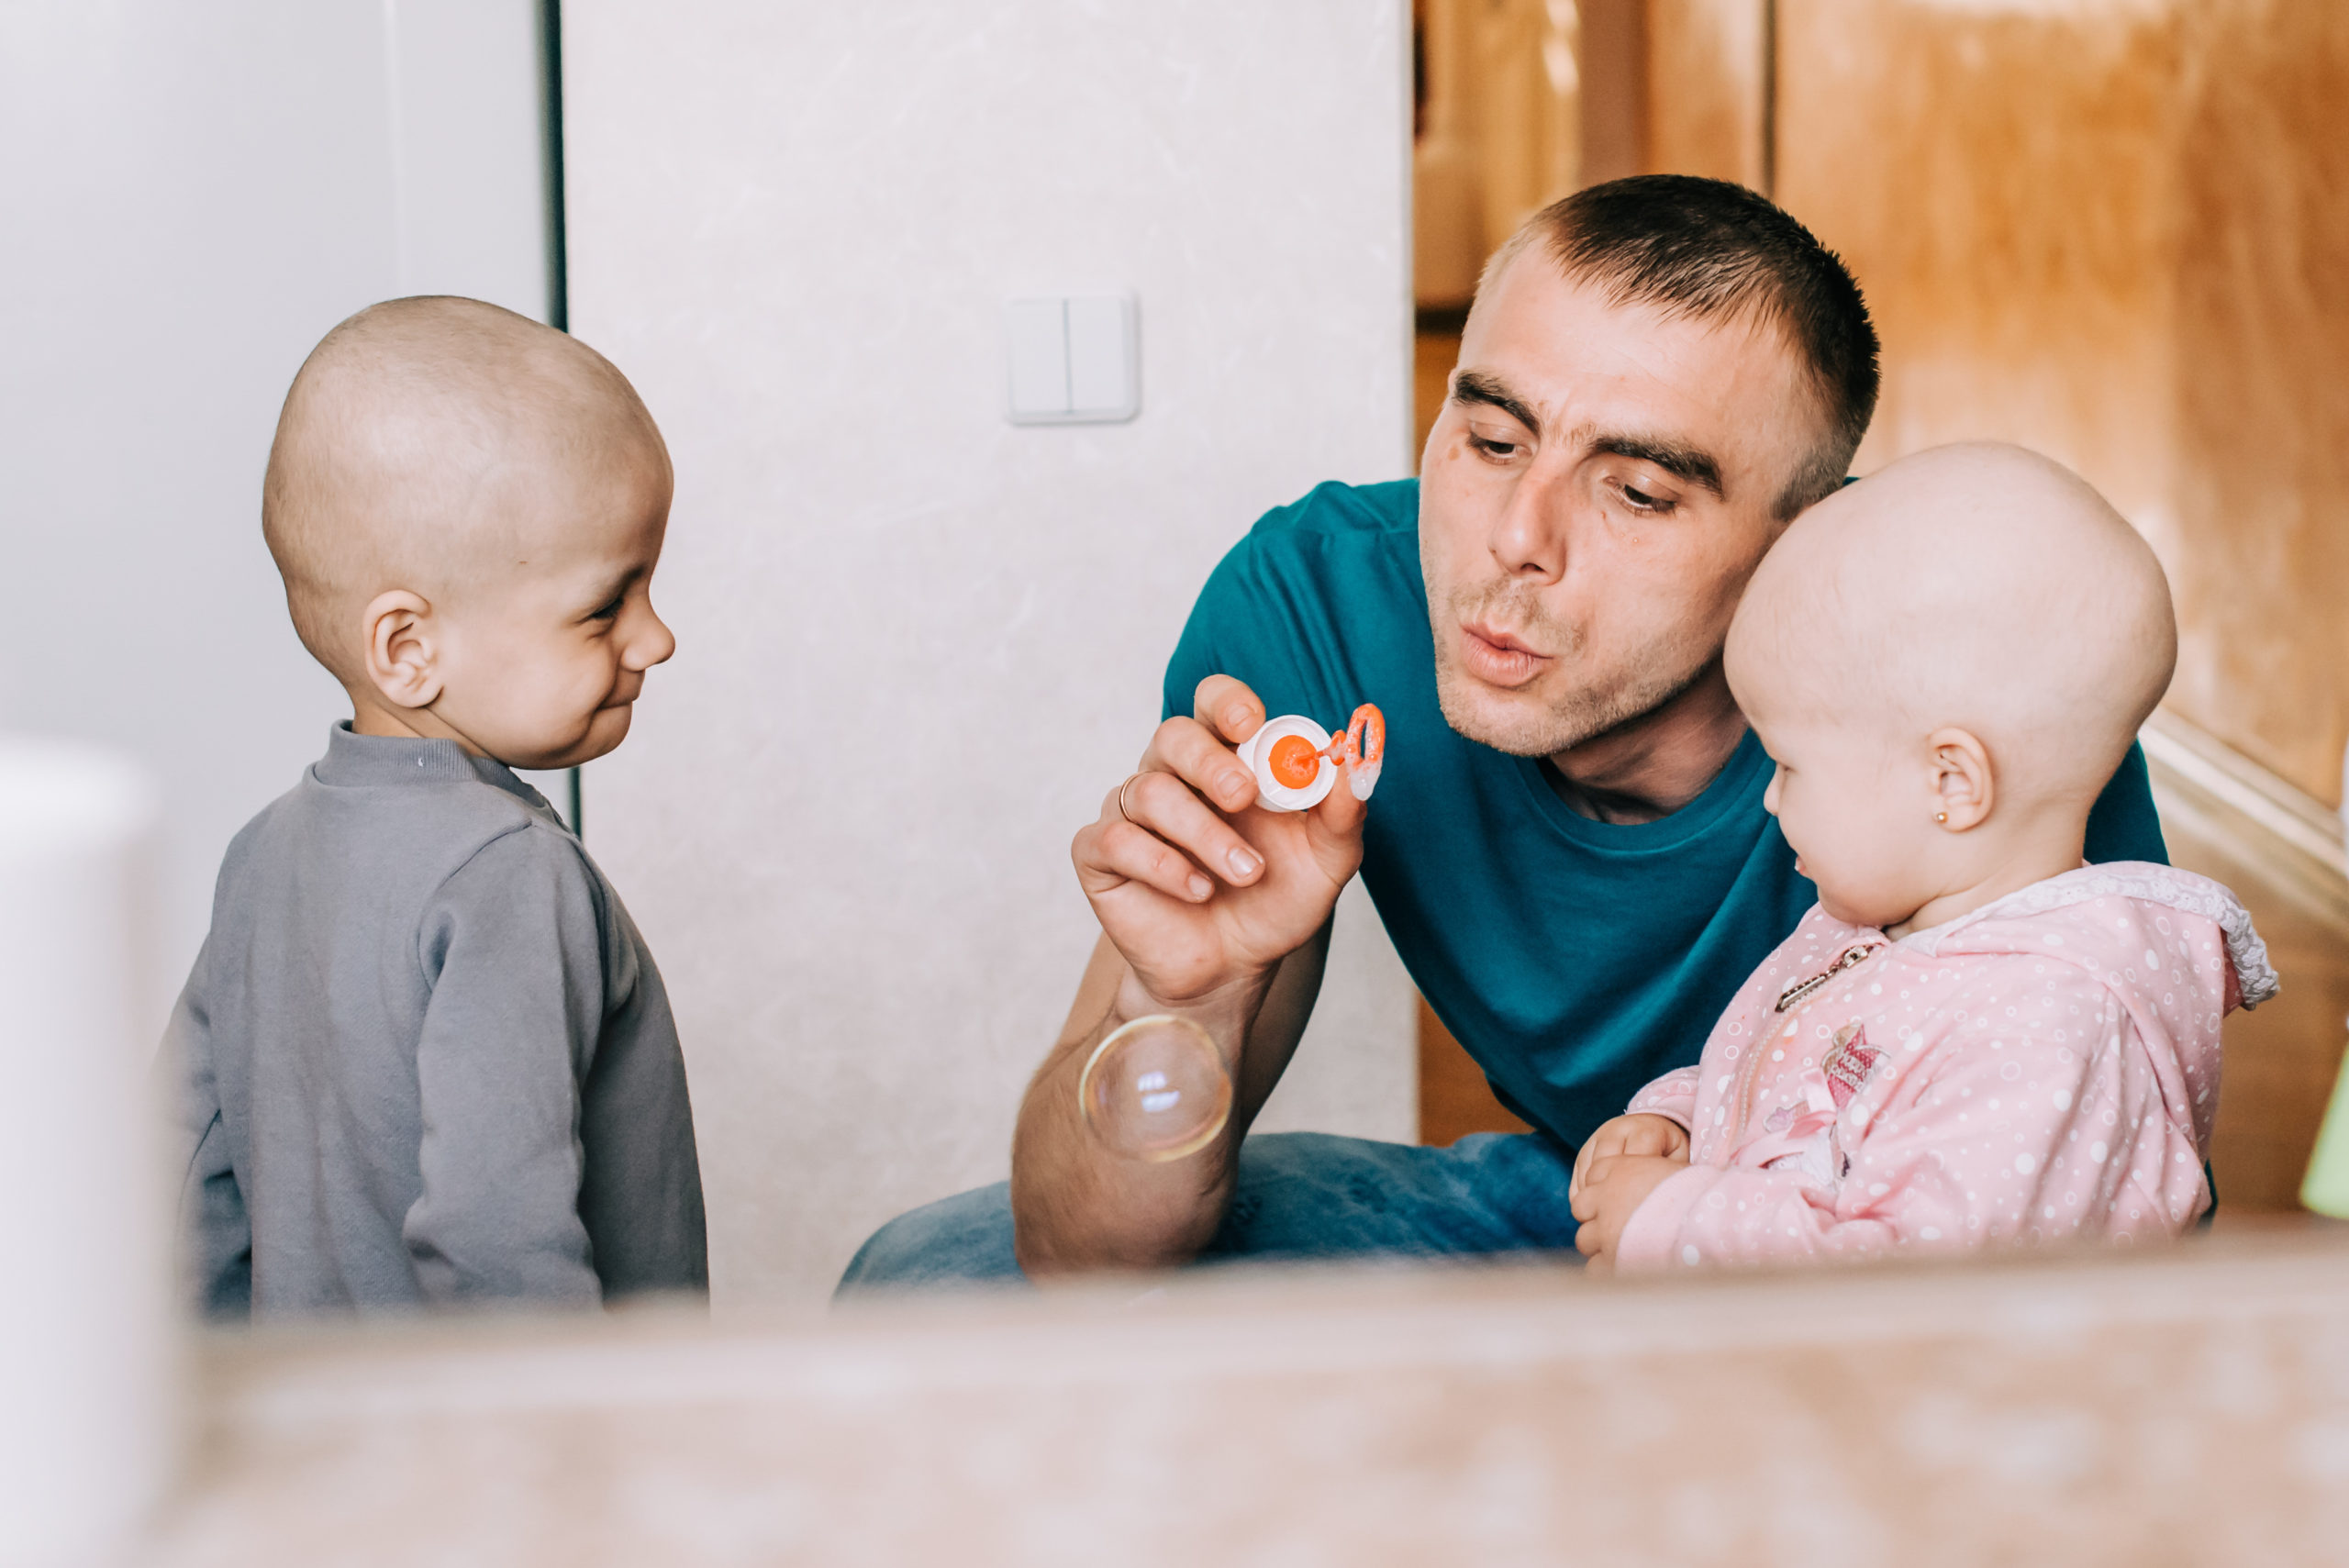 A person blowing bubbles with two small children